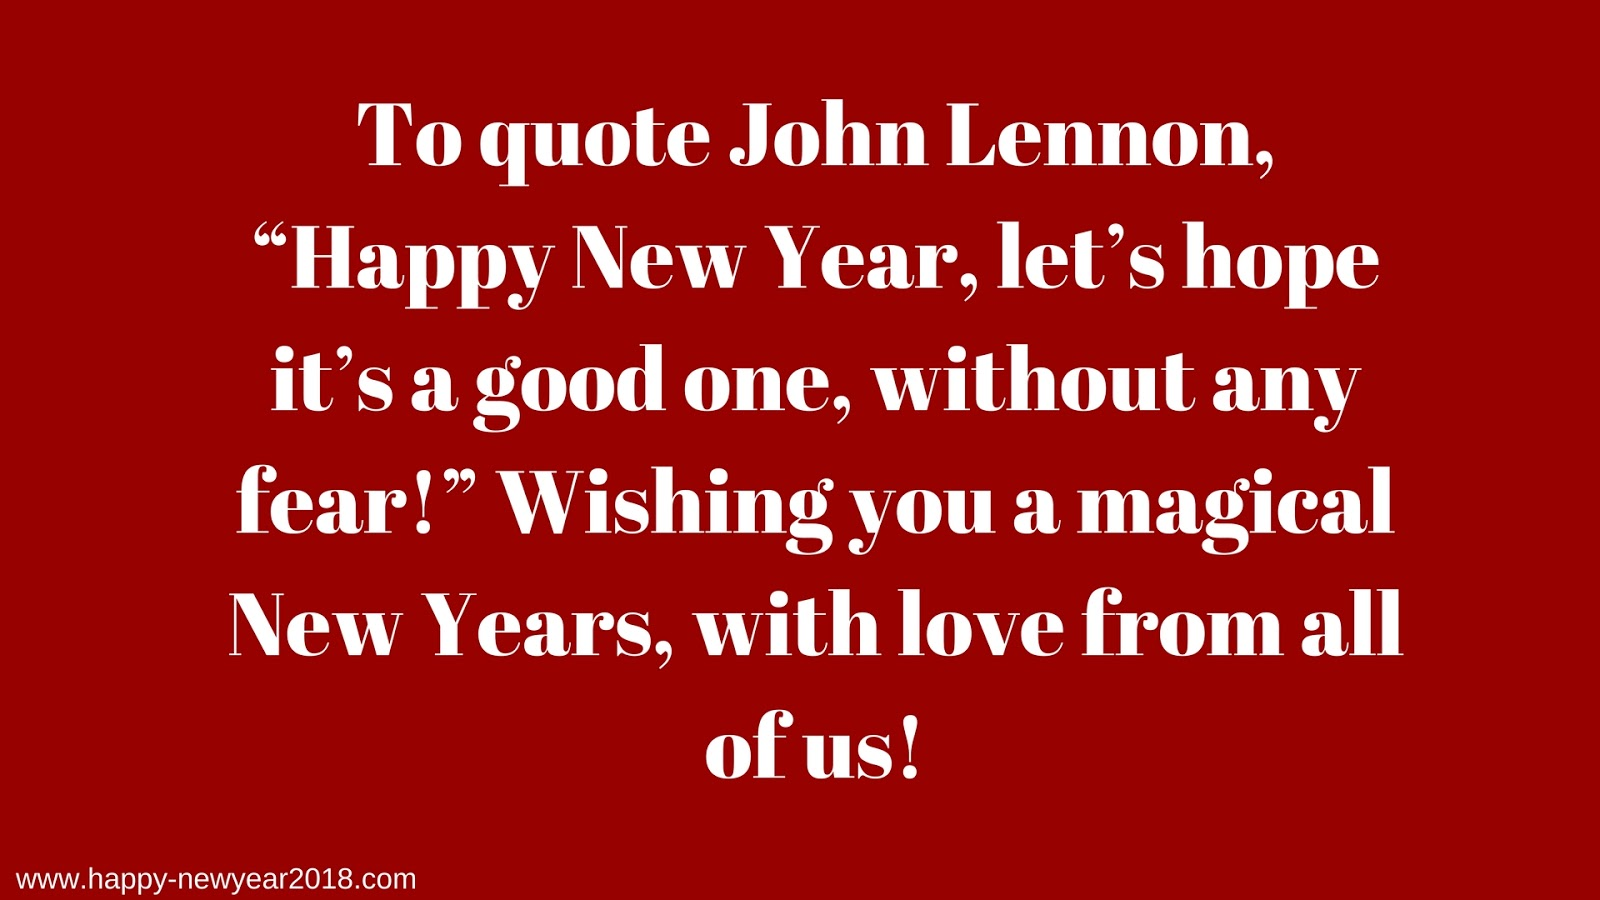 happy new year images 2018 new year quotes 2018